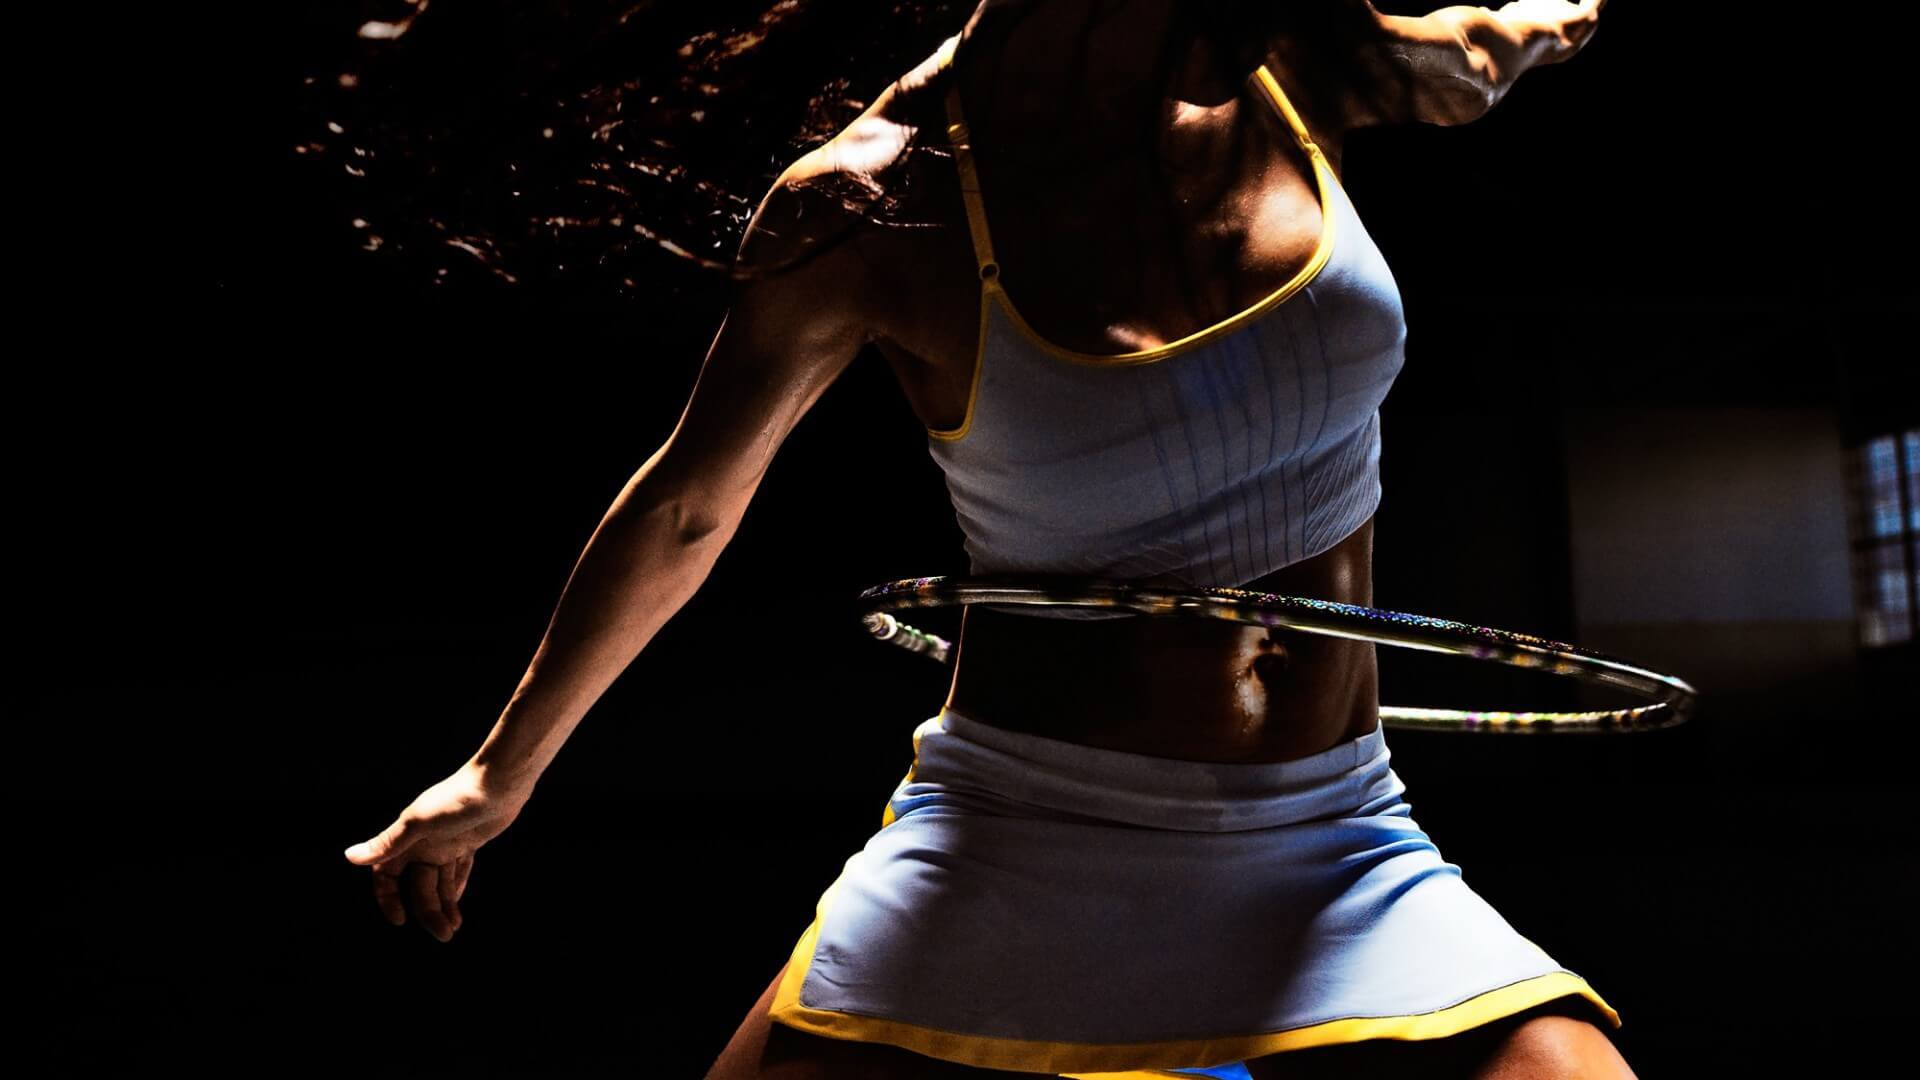 Sport_Hula_hoop_for_fitness_085769_